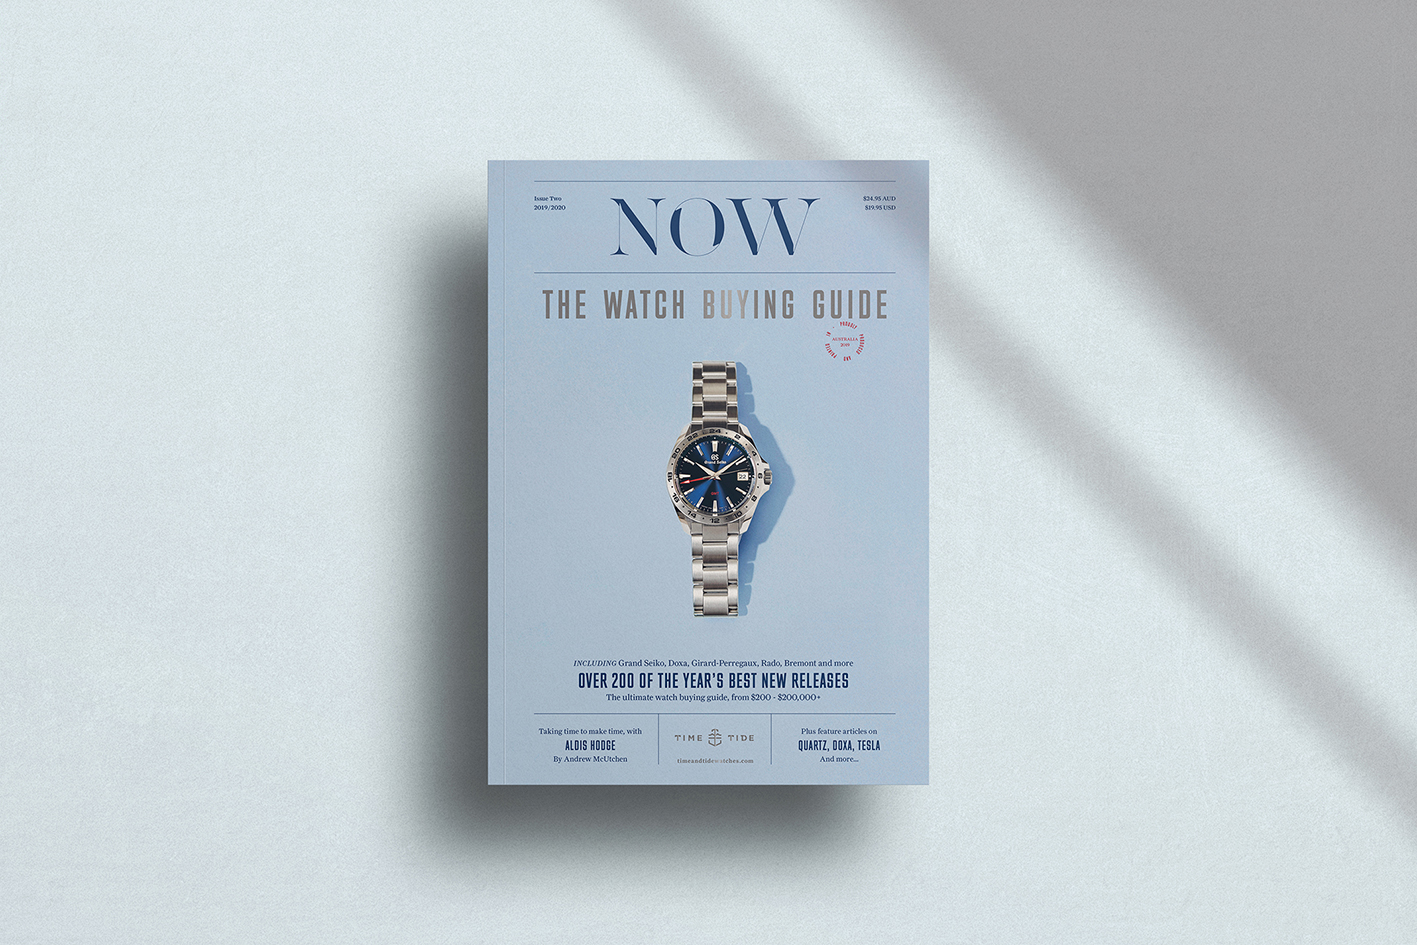 INTRODUCING: Time+Tide's NOW Magazine Edition 2, now available in the shop